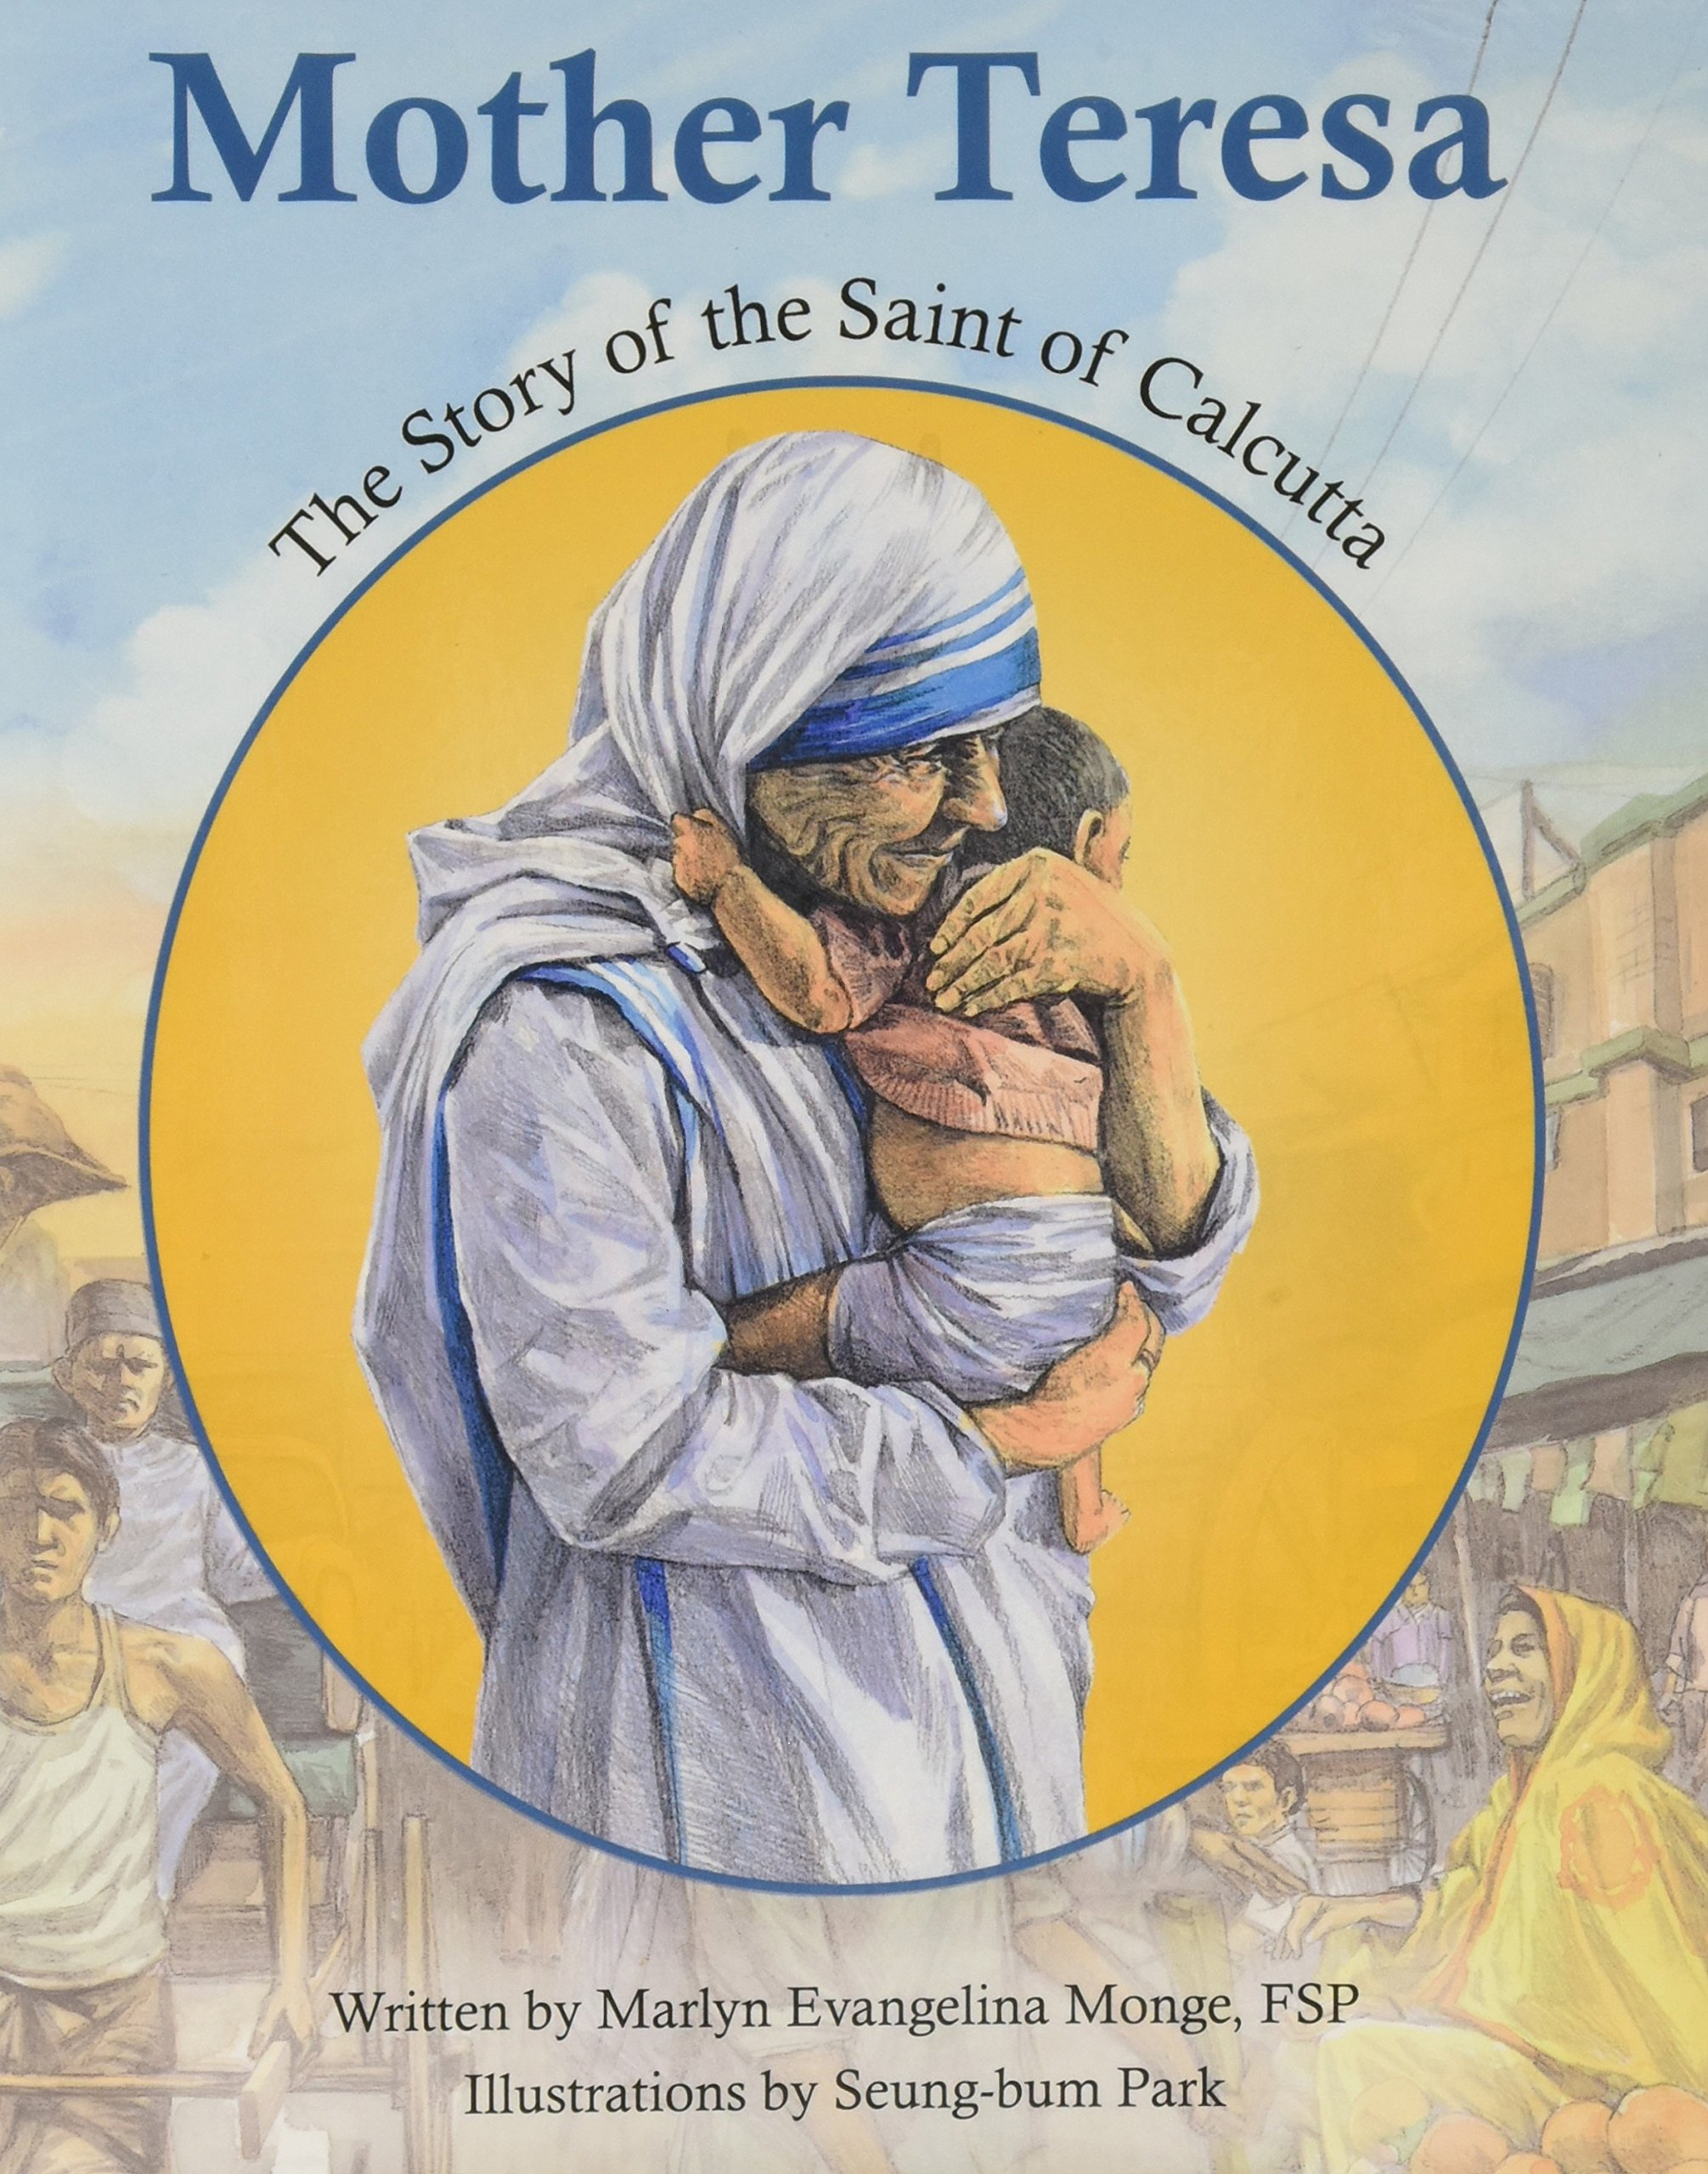 Mother Teresa: The Story of the Saint of Calcutta (Encounter the Saints)